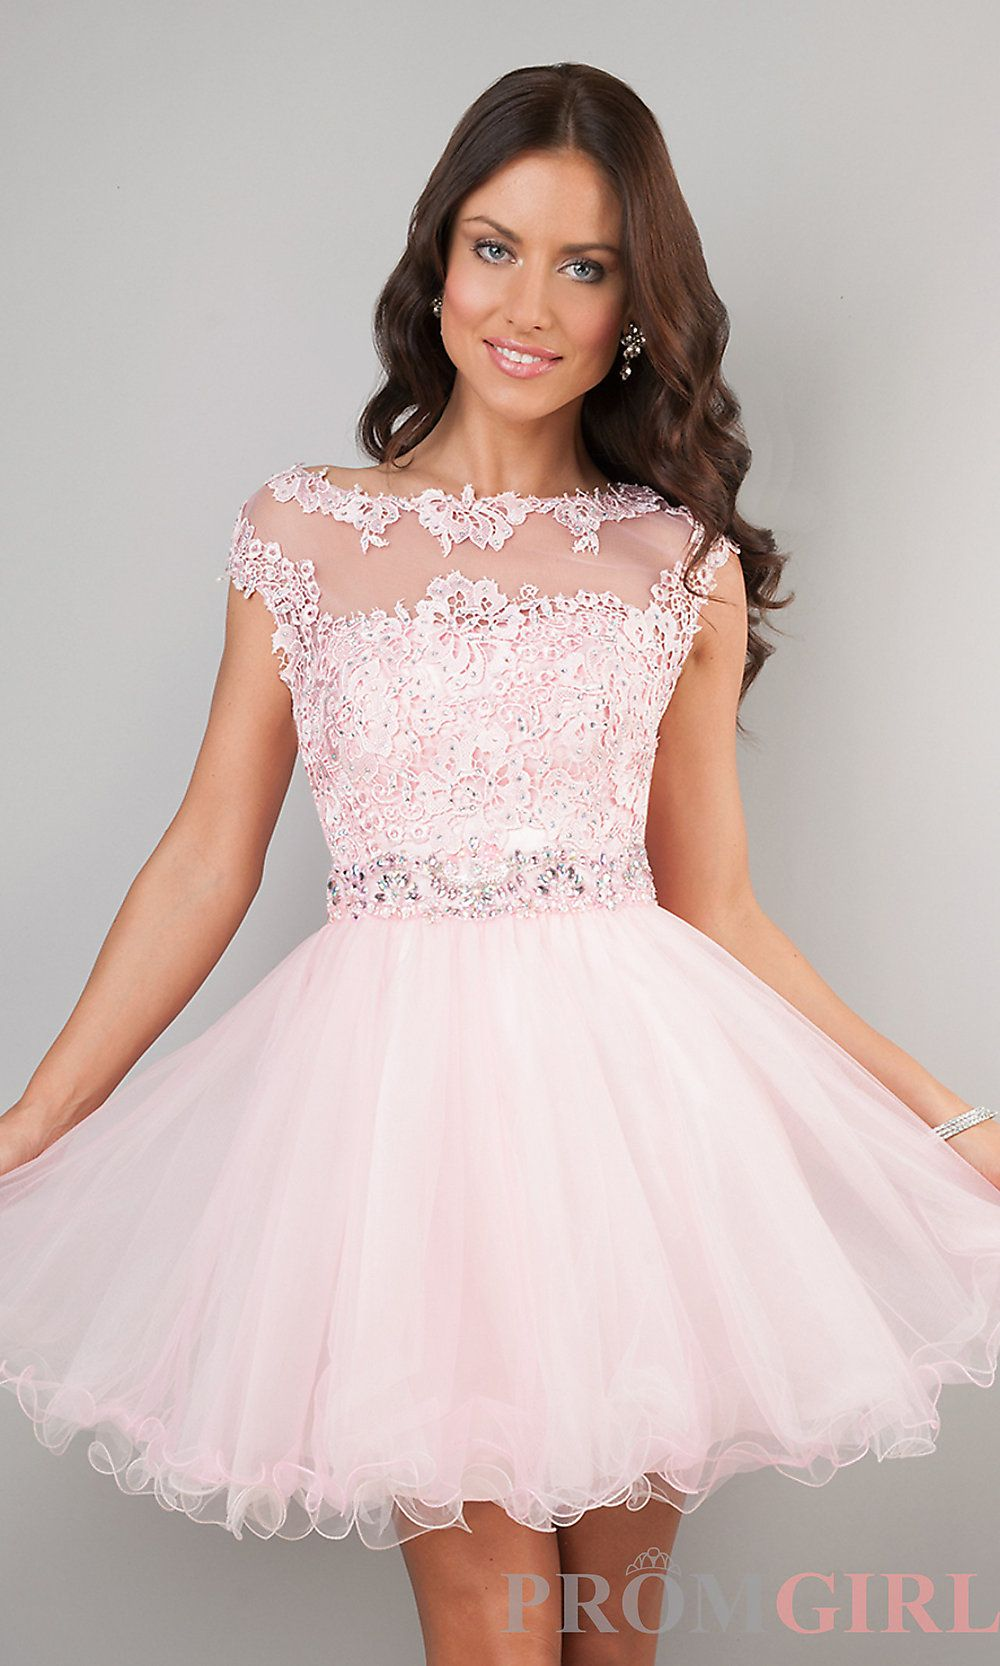 Black and white grade dance dresses prom dresses with